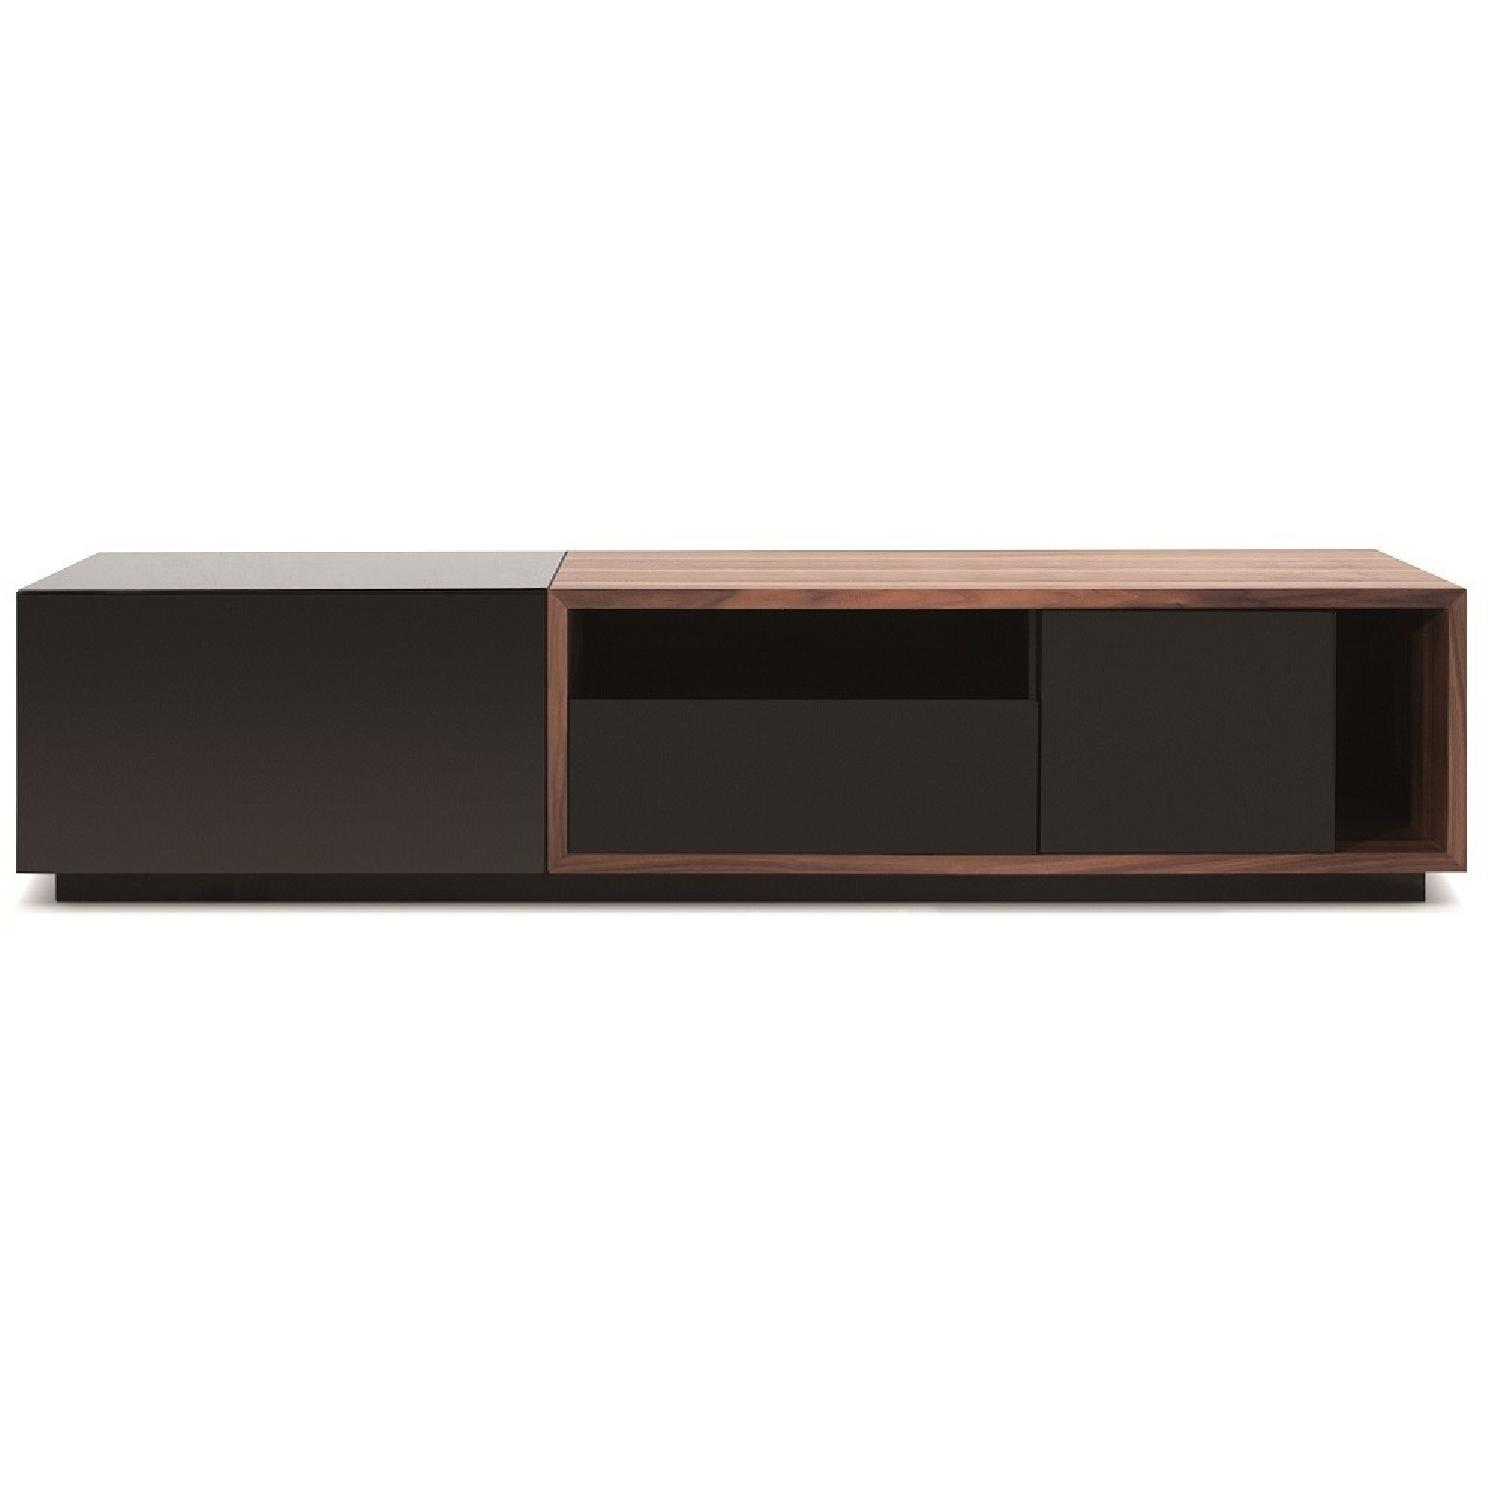 TV Stand w/ Walnut & Black Gloss Finish & Drawers - image-4